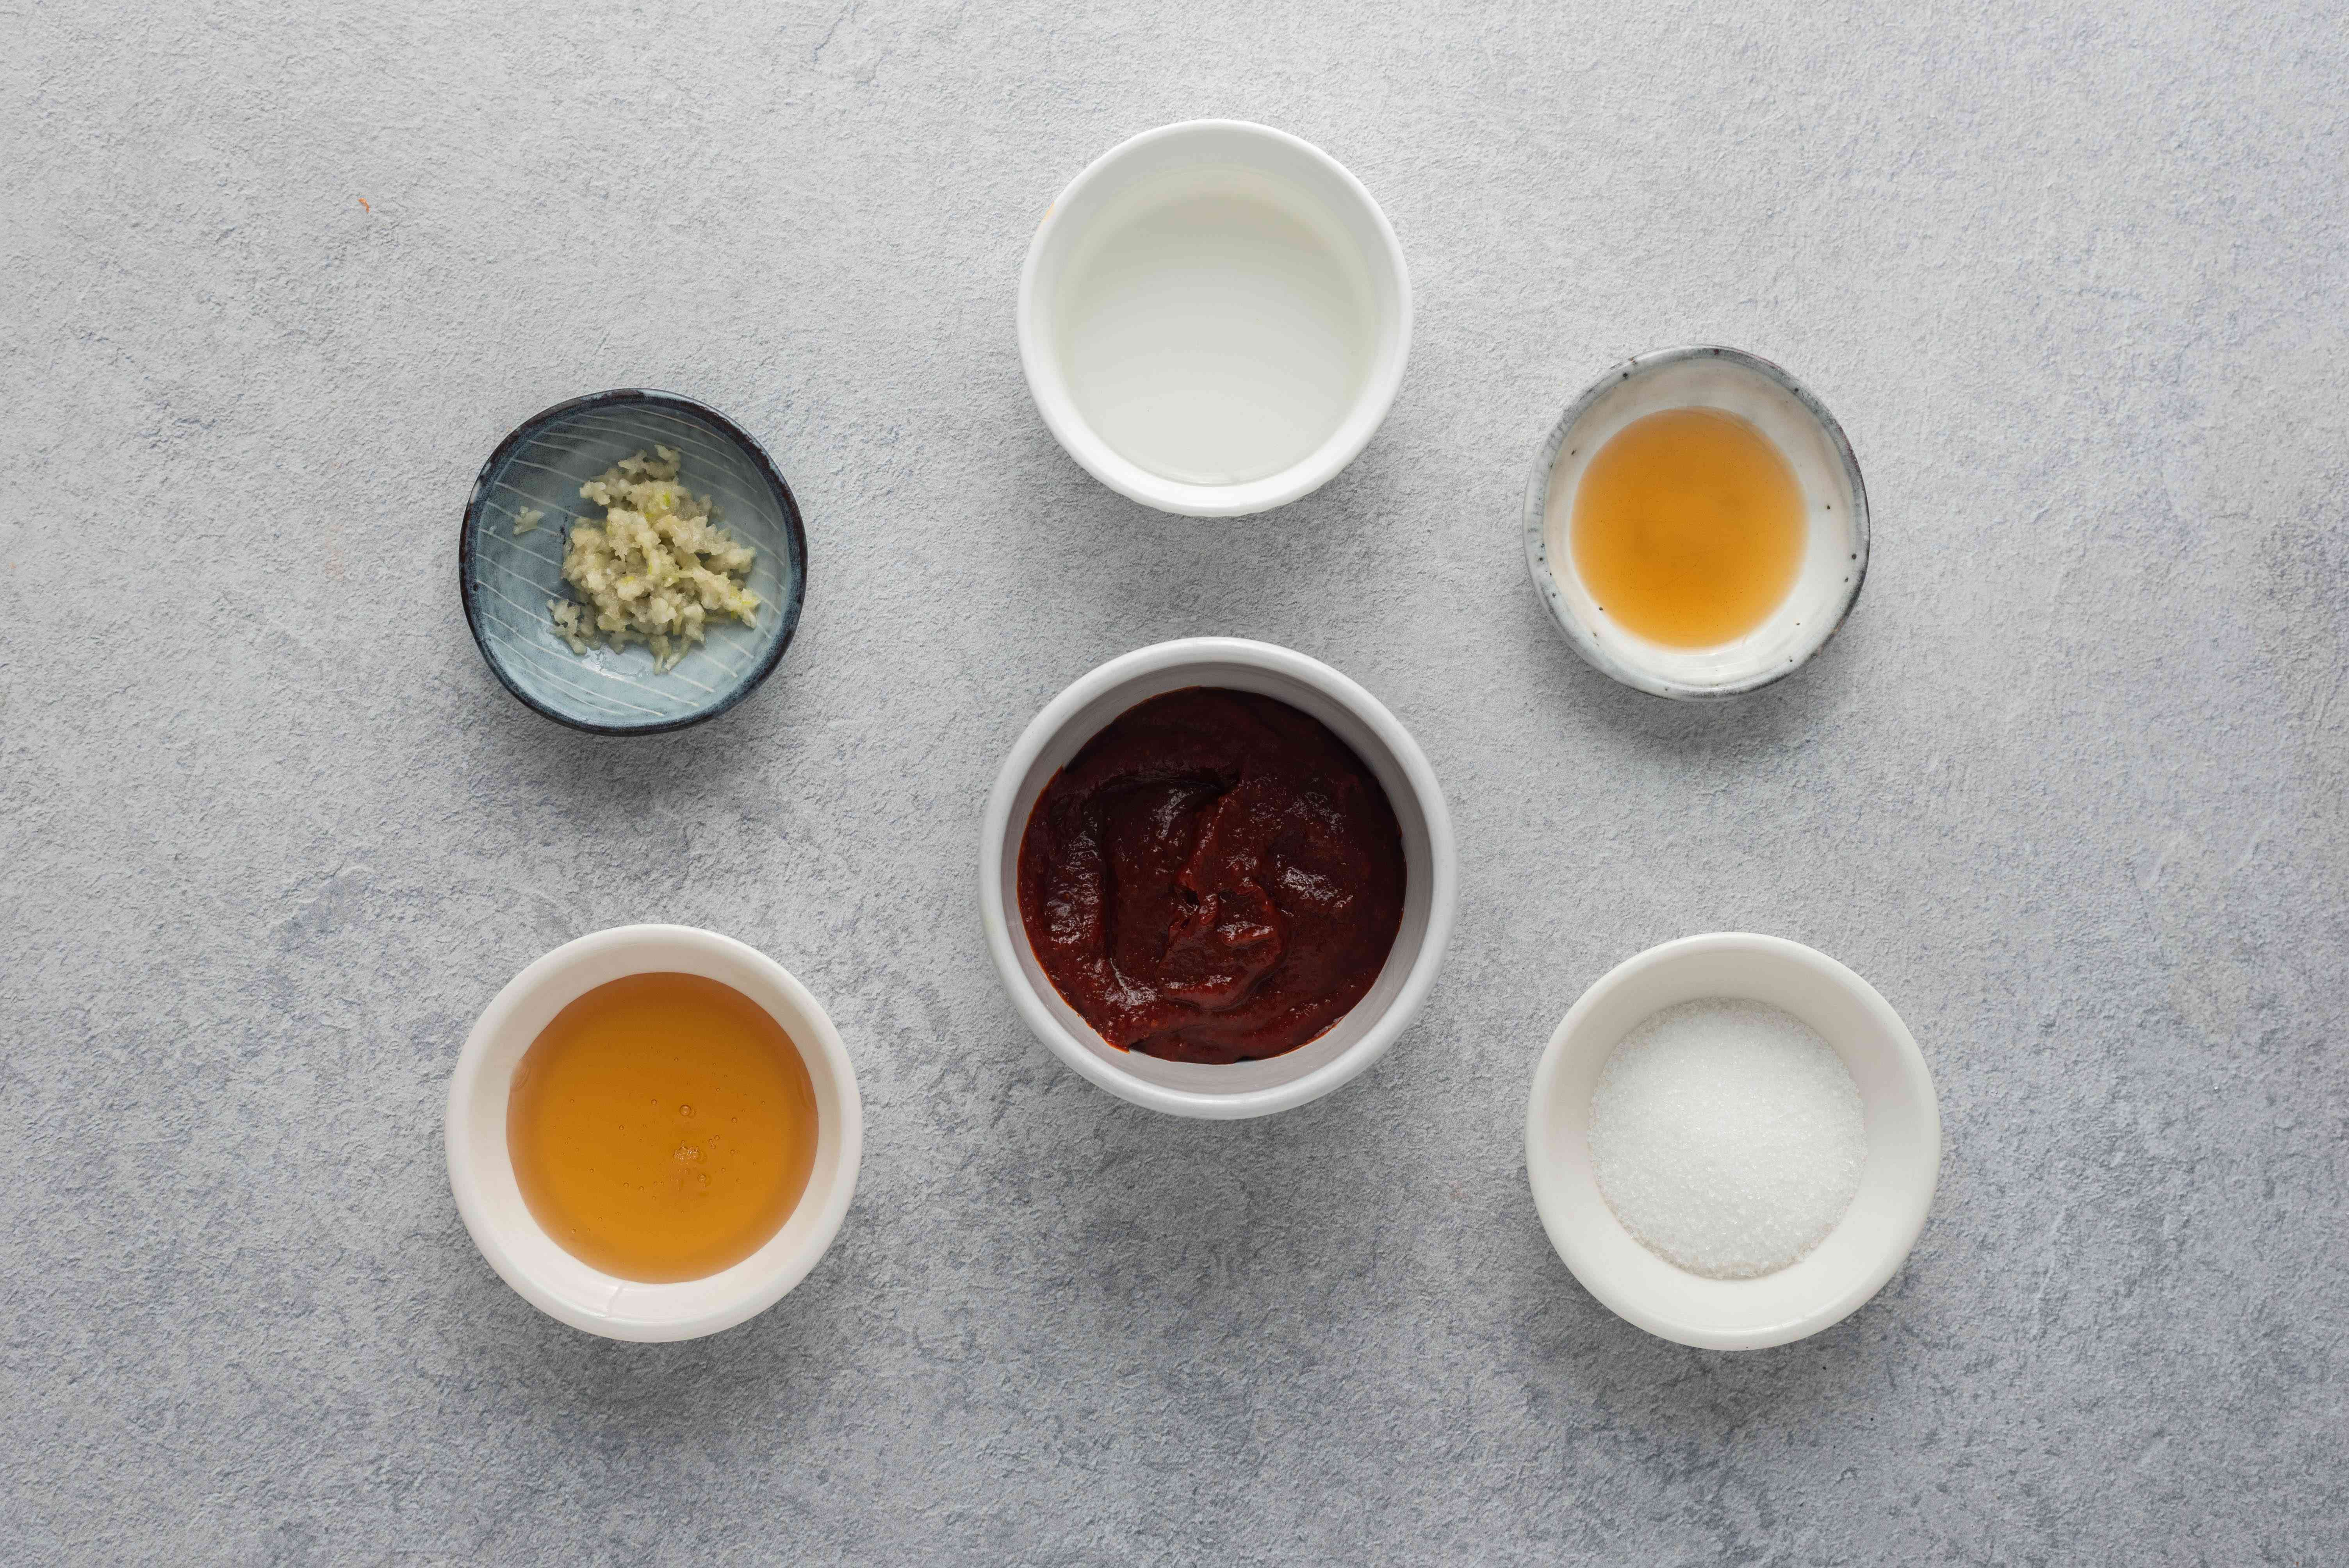 Spicy and Sweet Korean Chogochujang Dipping Sauce ingredients